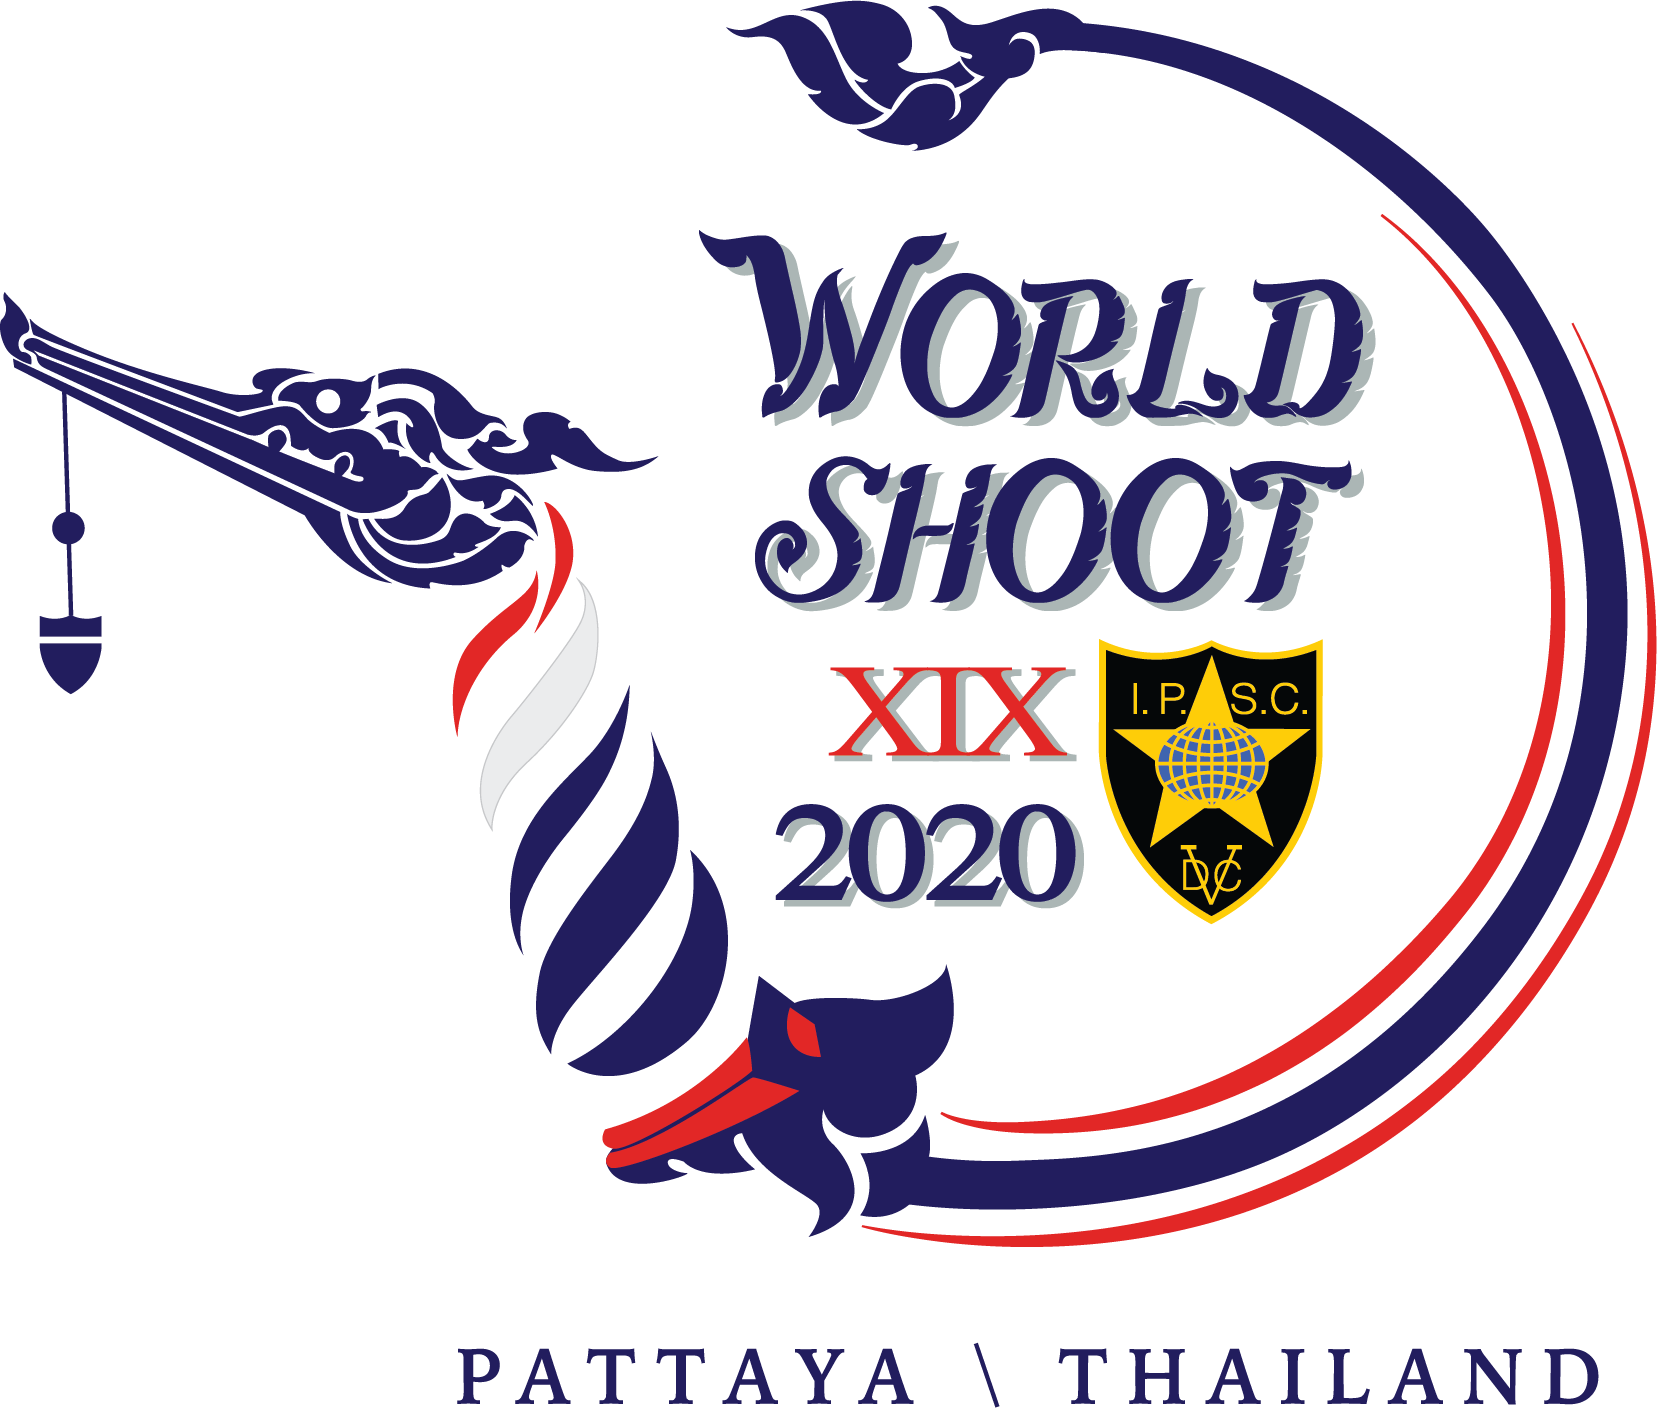 world ipsc 2020